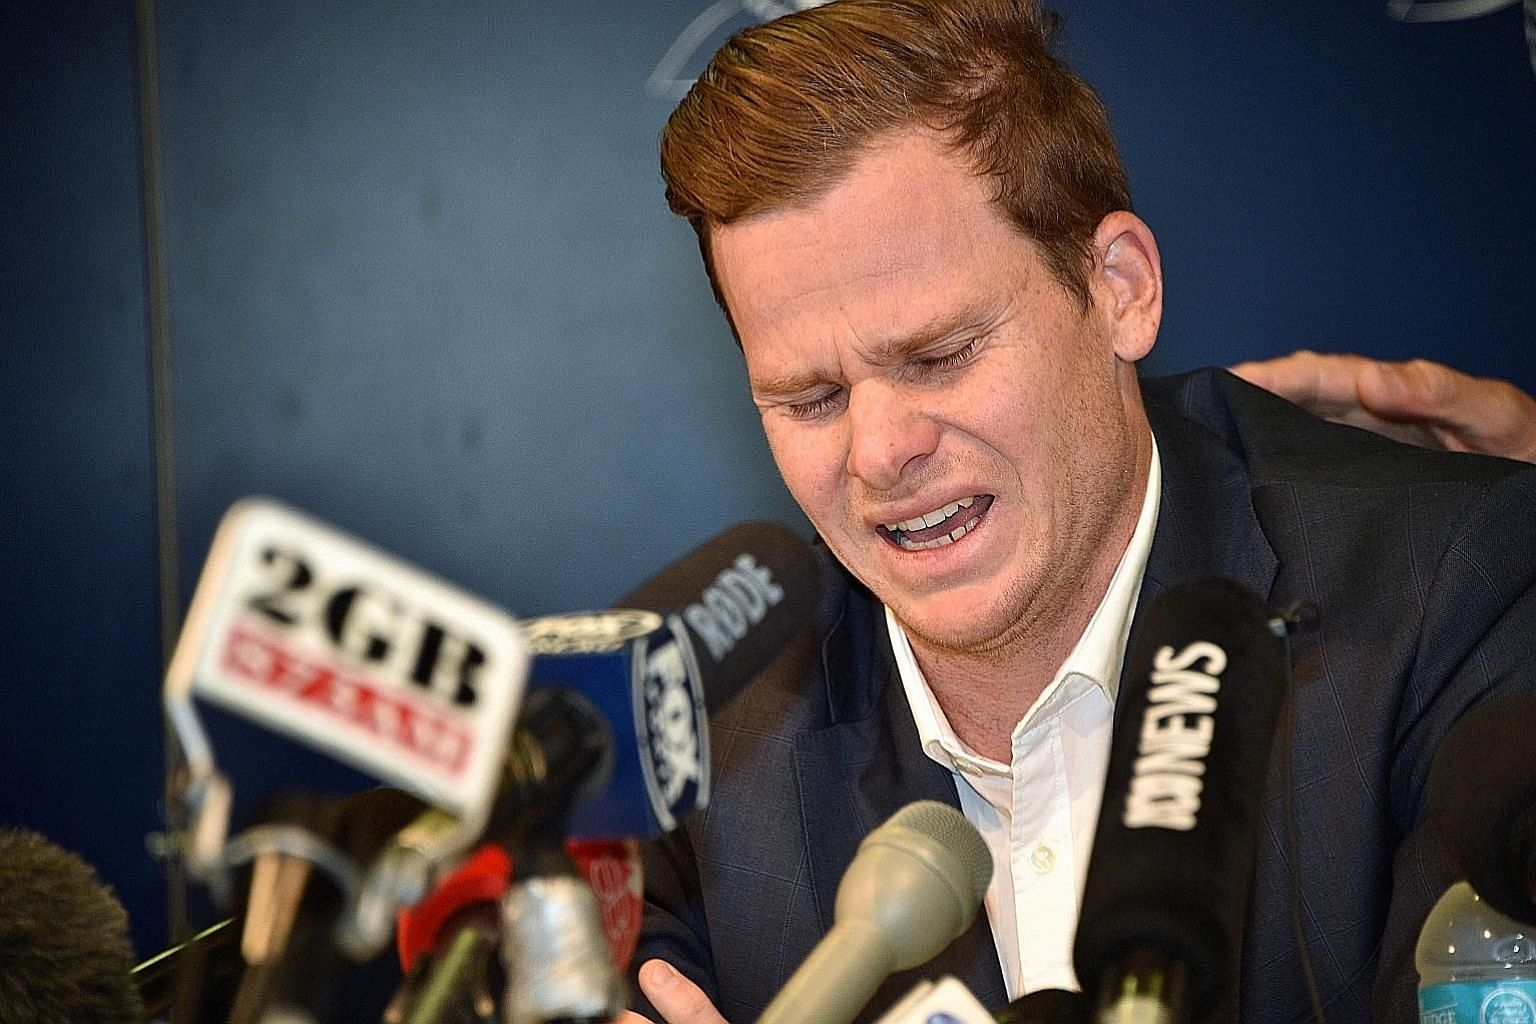 Steve Smith overcome by emotion at Sydney Airport, where the former Australian skipper failed to complete a news conference to apologise for his role in the ball-tampering scandal in South Africa. He lost his captaincy and was handed a 12-month suspe